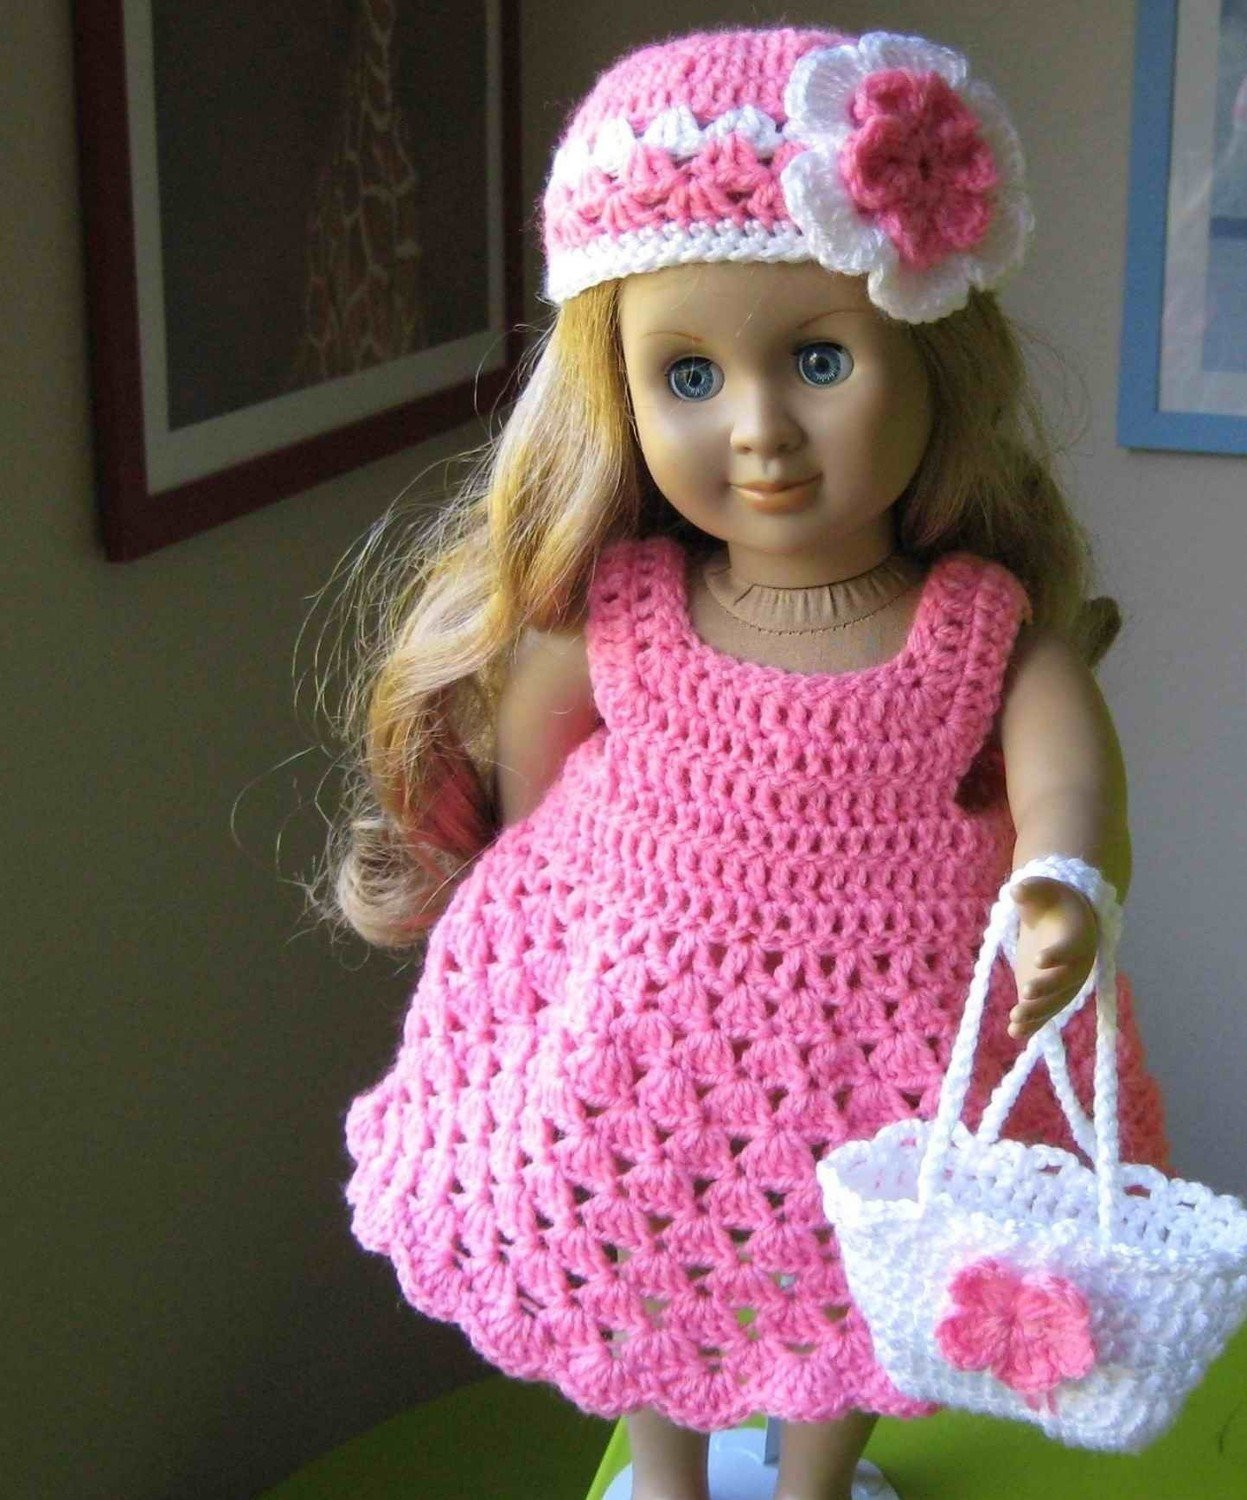 Crochet Doll Dress Awesome Doll Dress Parttern Crocheted Doll Dress for American Girl Of Unique 43 Pictures Crochet Doll Dress